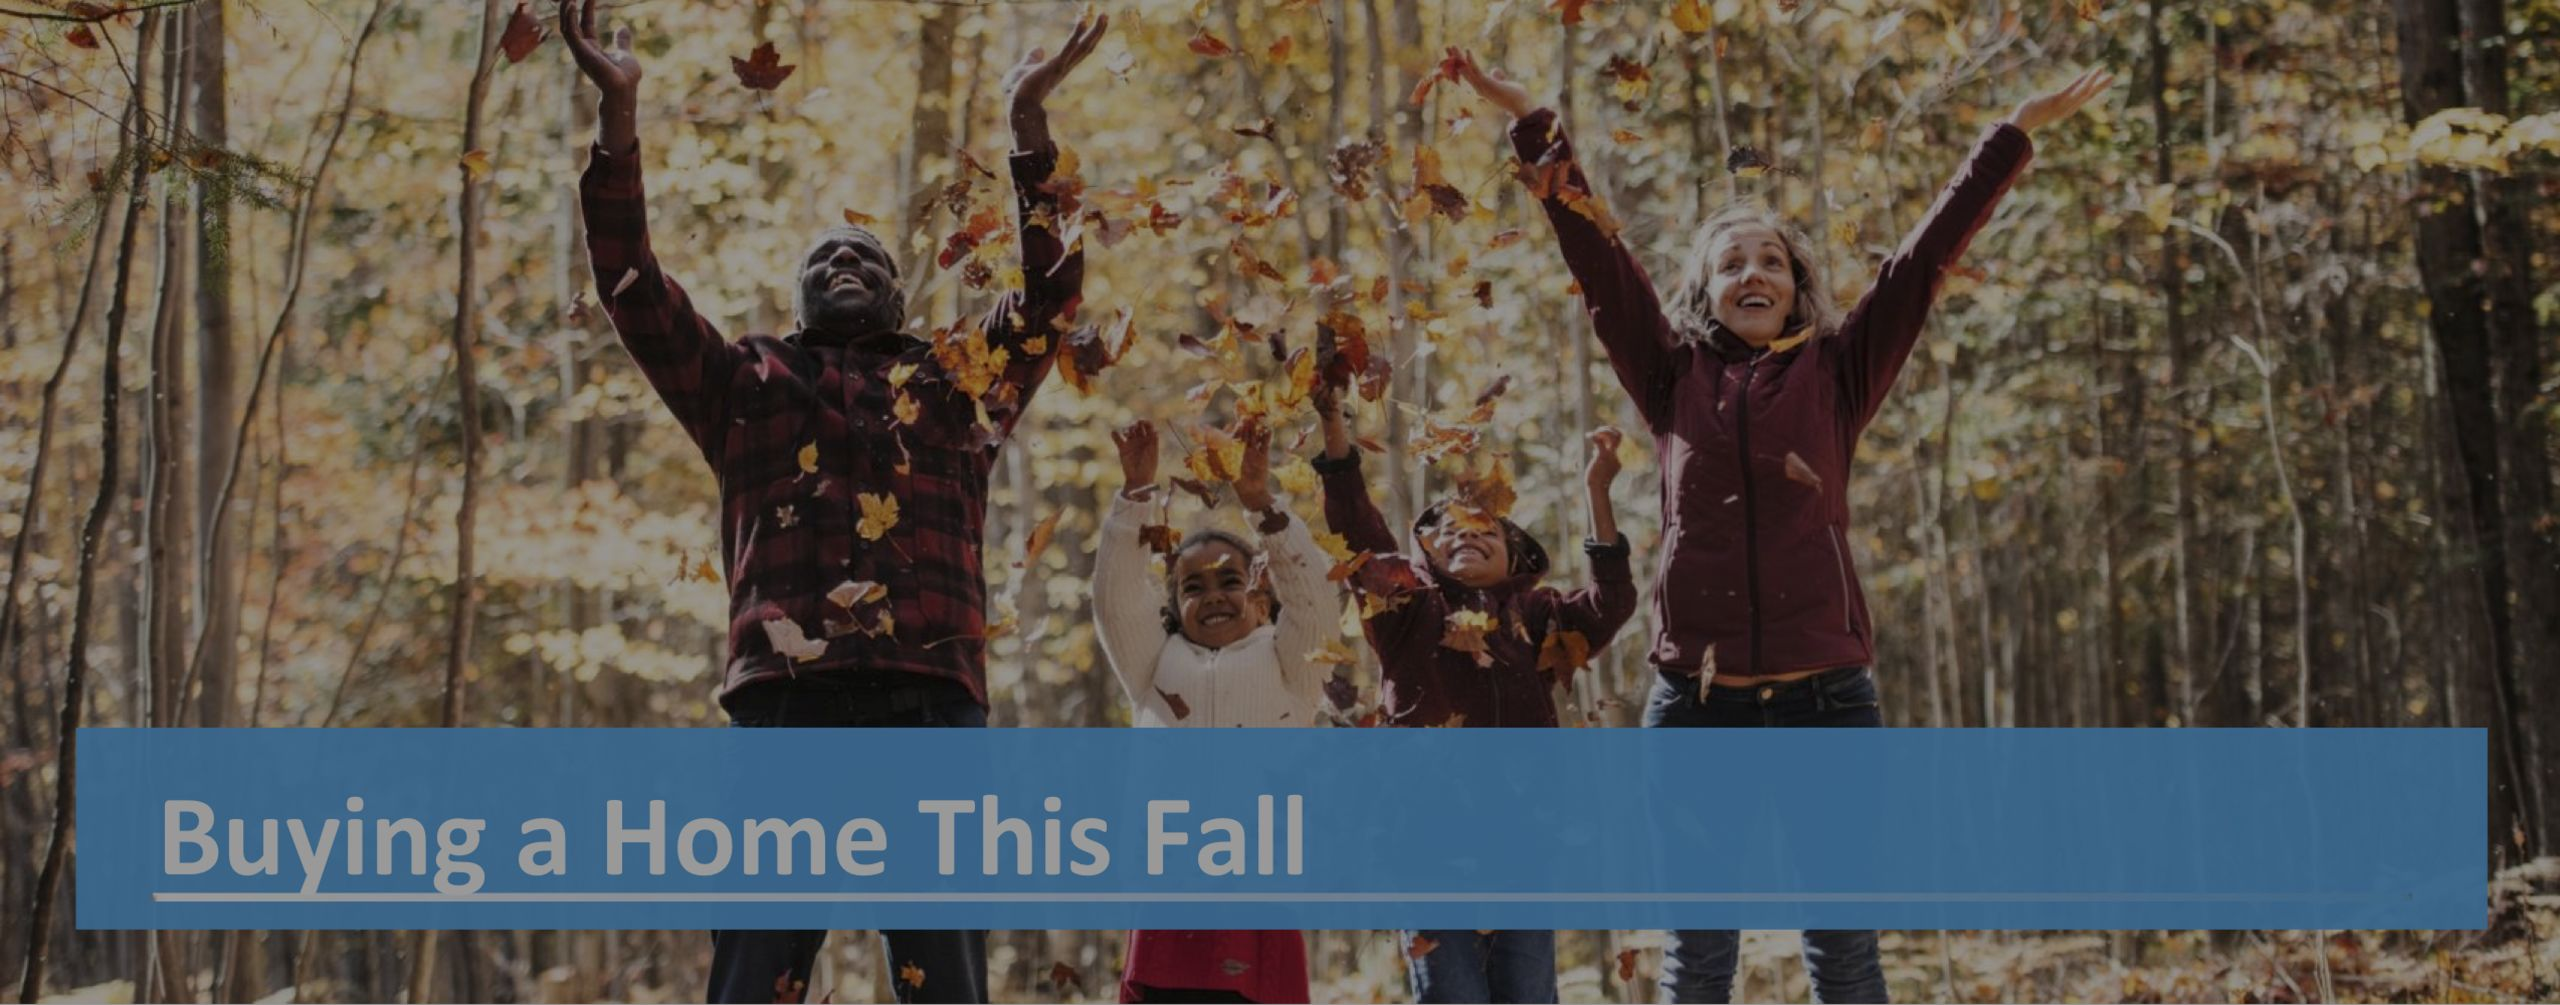 Buying a Home This Fall